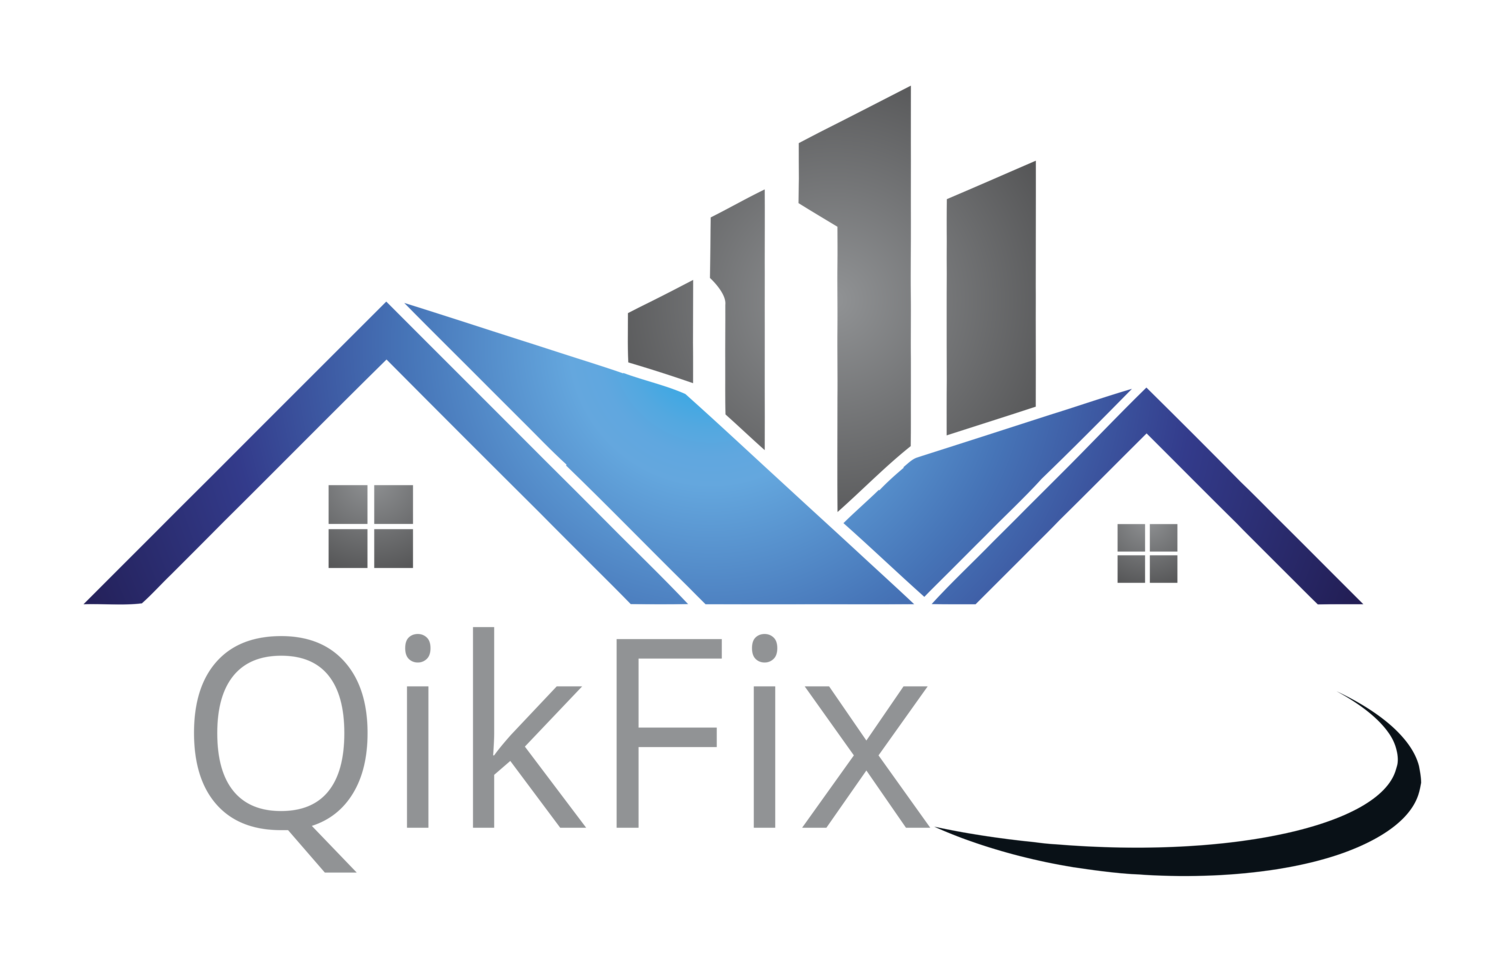 QIK Fix Home Improvement